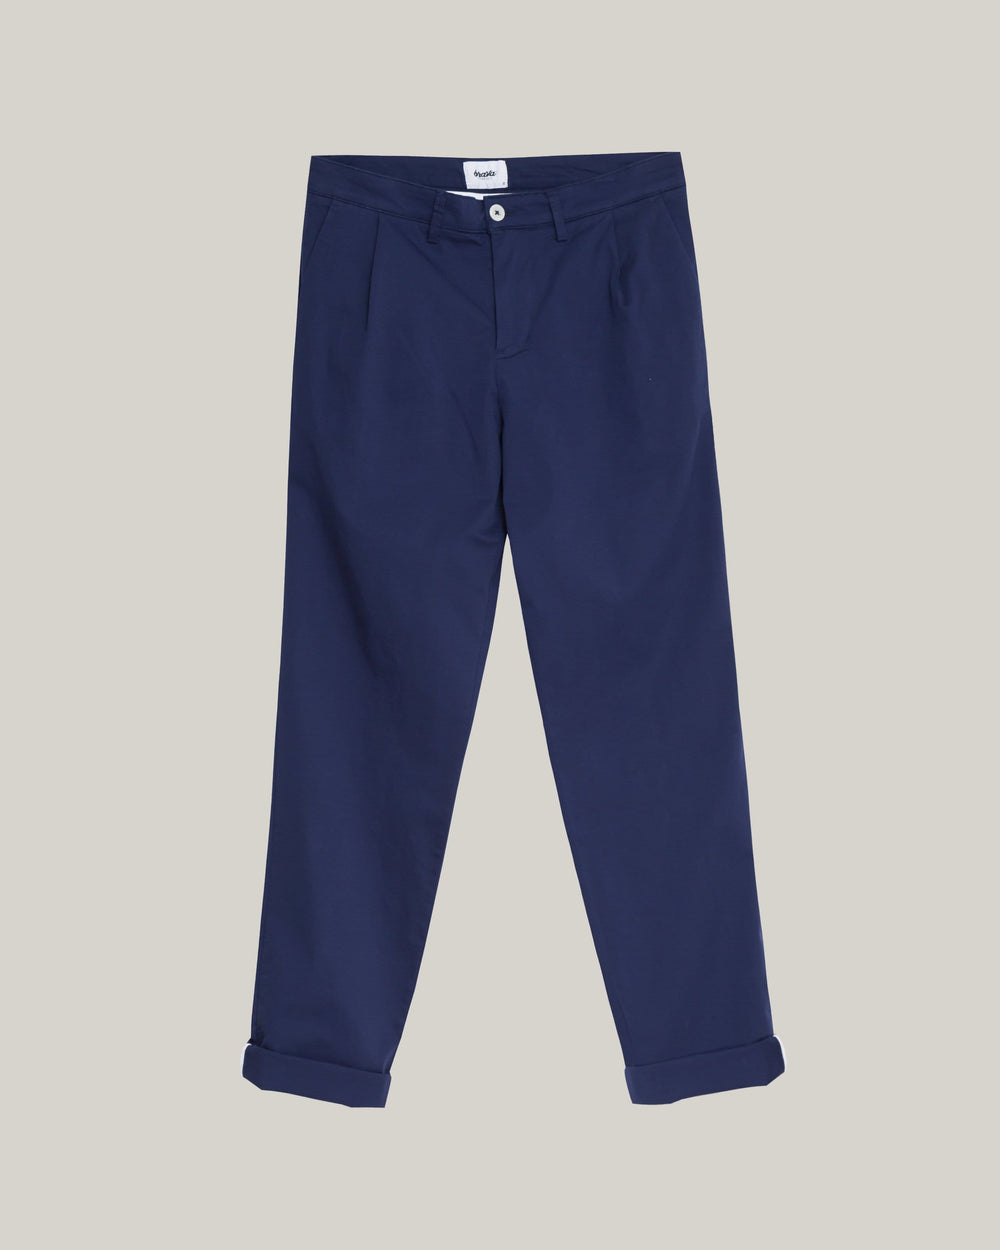 Brava Fabrics Trousers Pleated Chino Pants Navy